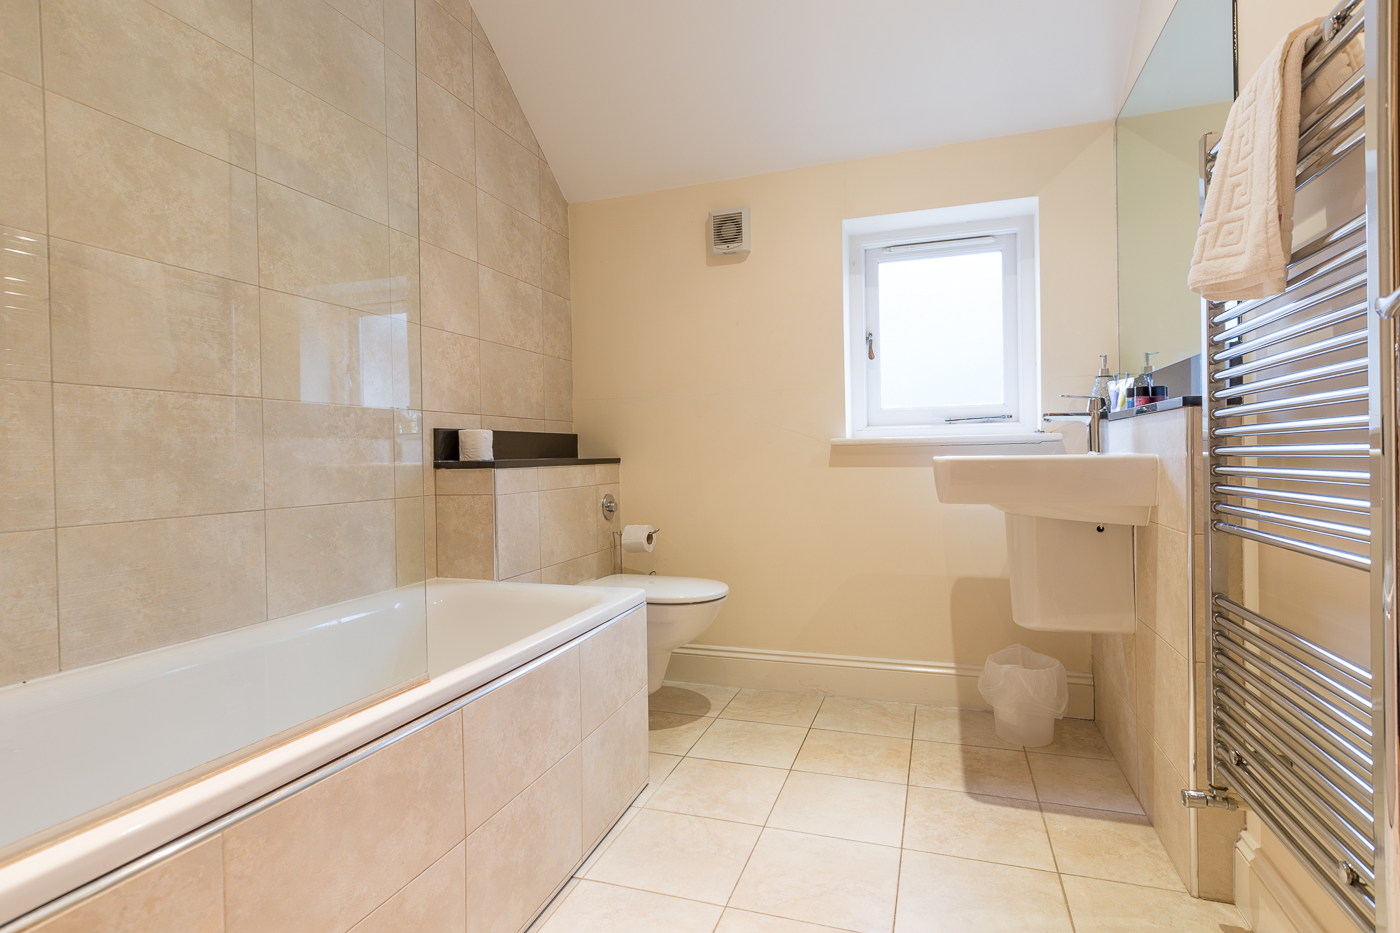 Bathroom at Castle Mews Apartment, Centre, Bedford - Citybase Apartments